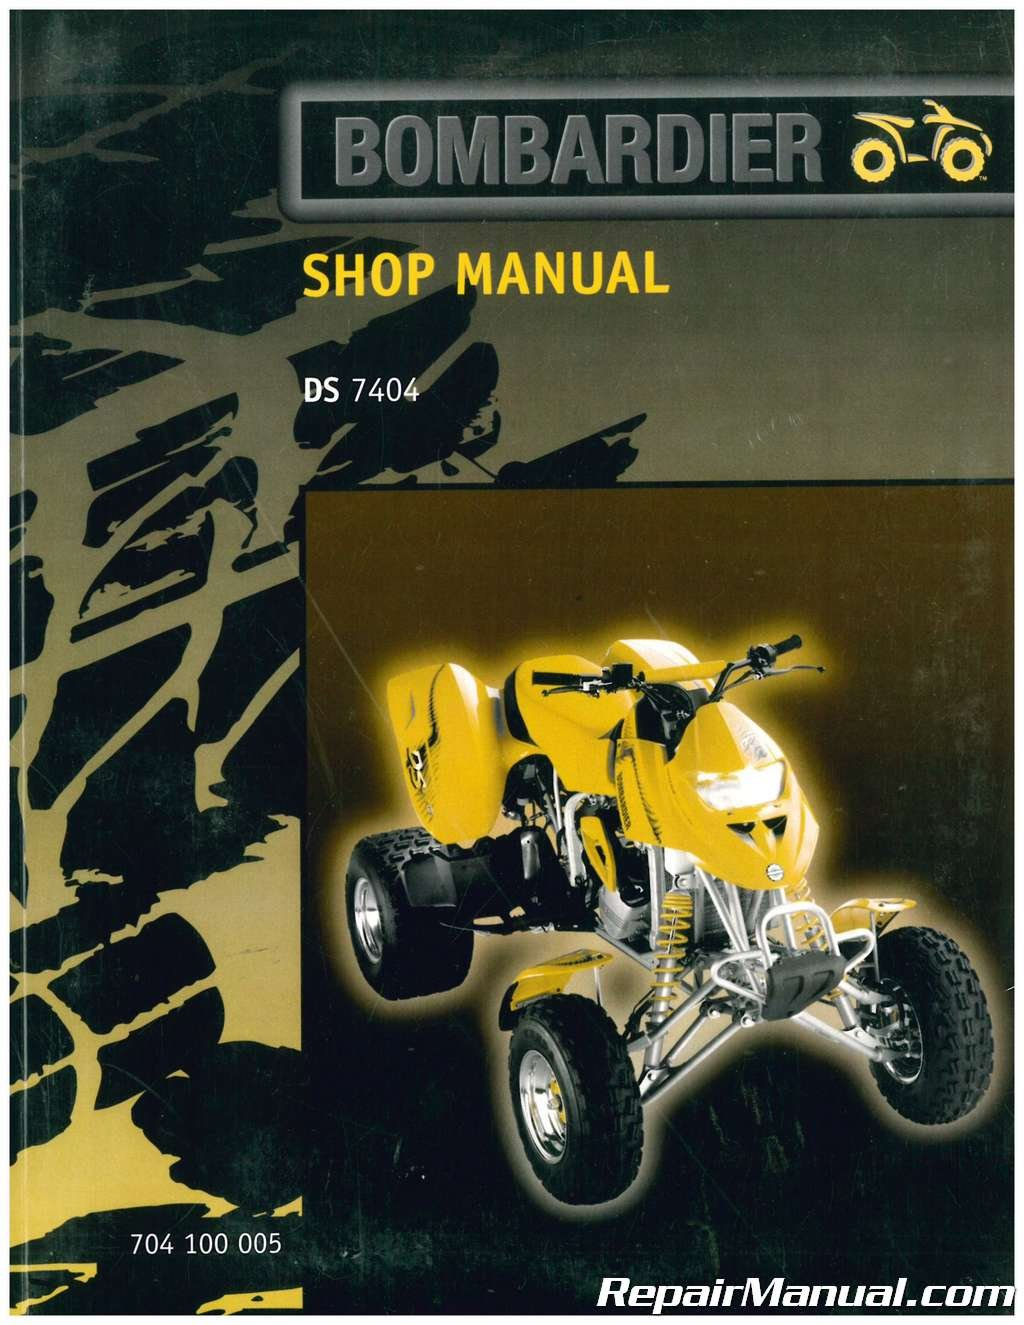 704100005 2000 Bombardier DS 650 Service Manual: Manufacturer: Amazon.com:  Books